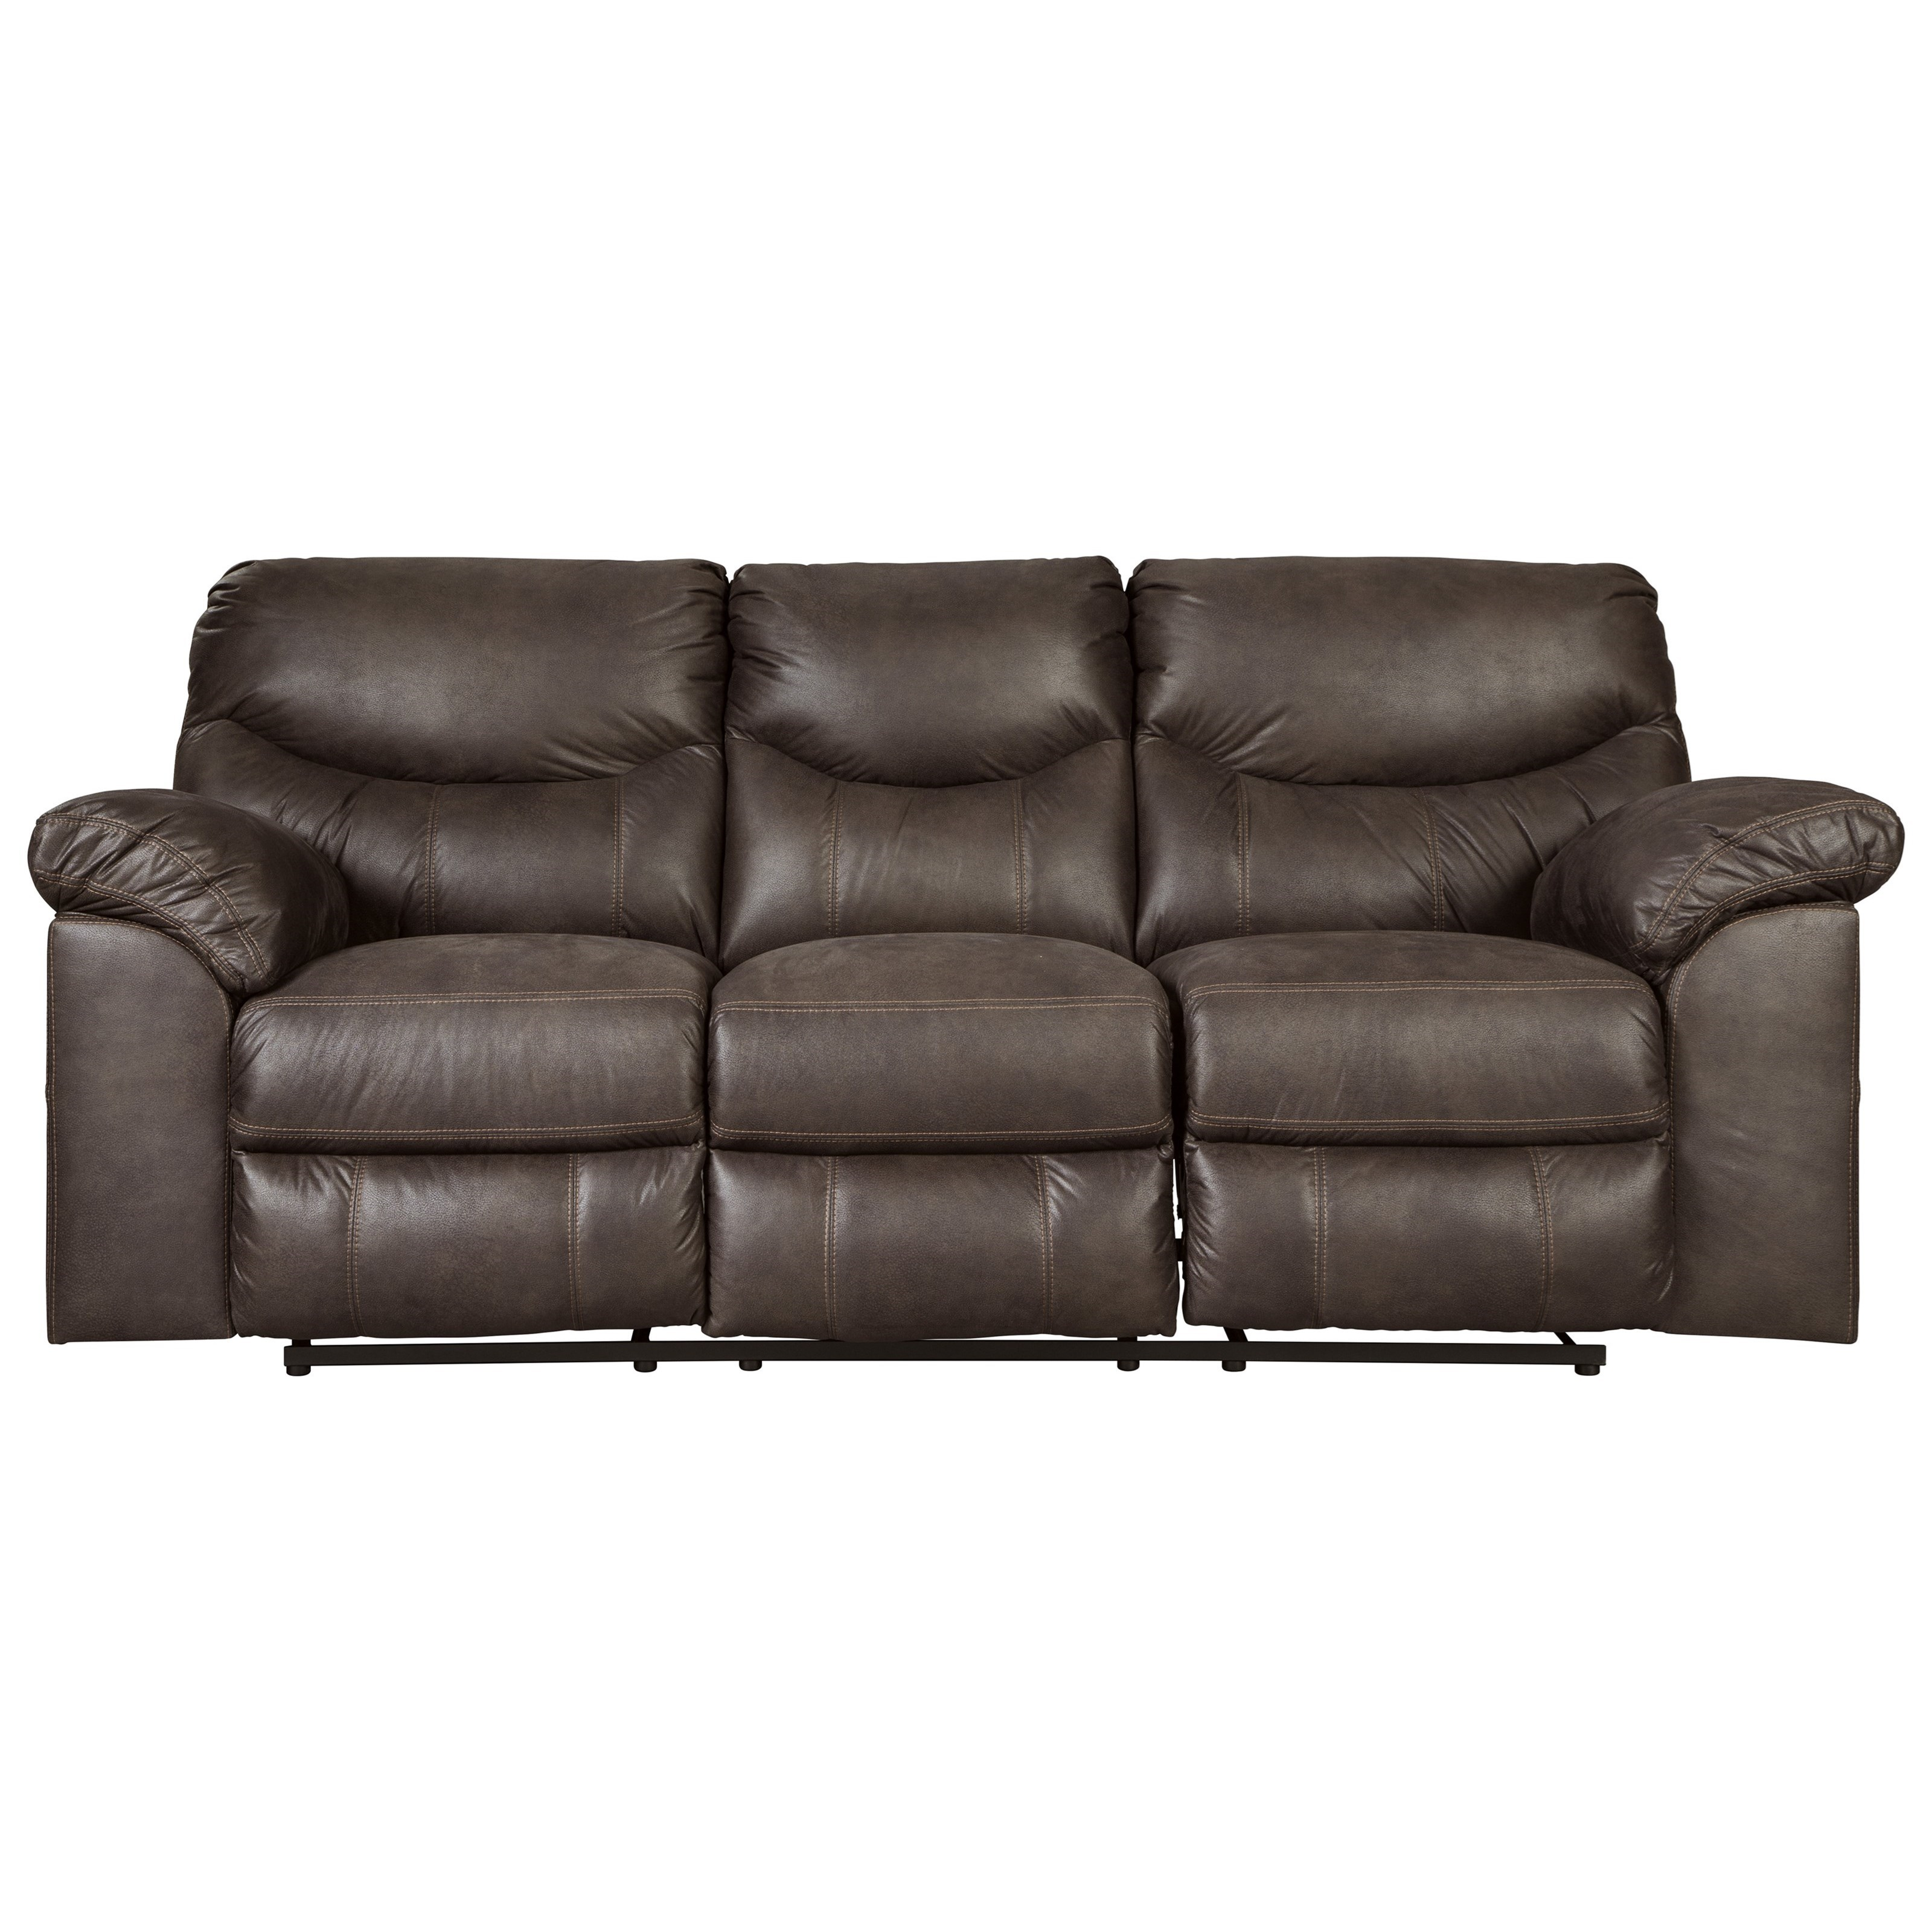 Boxberg Reclining Sofa by Signature Design by Ashley at Sparks HomeStore